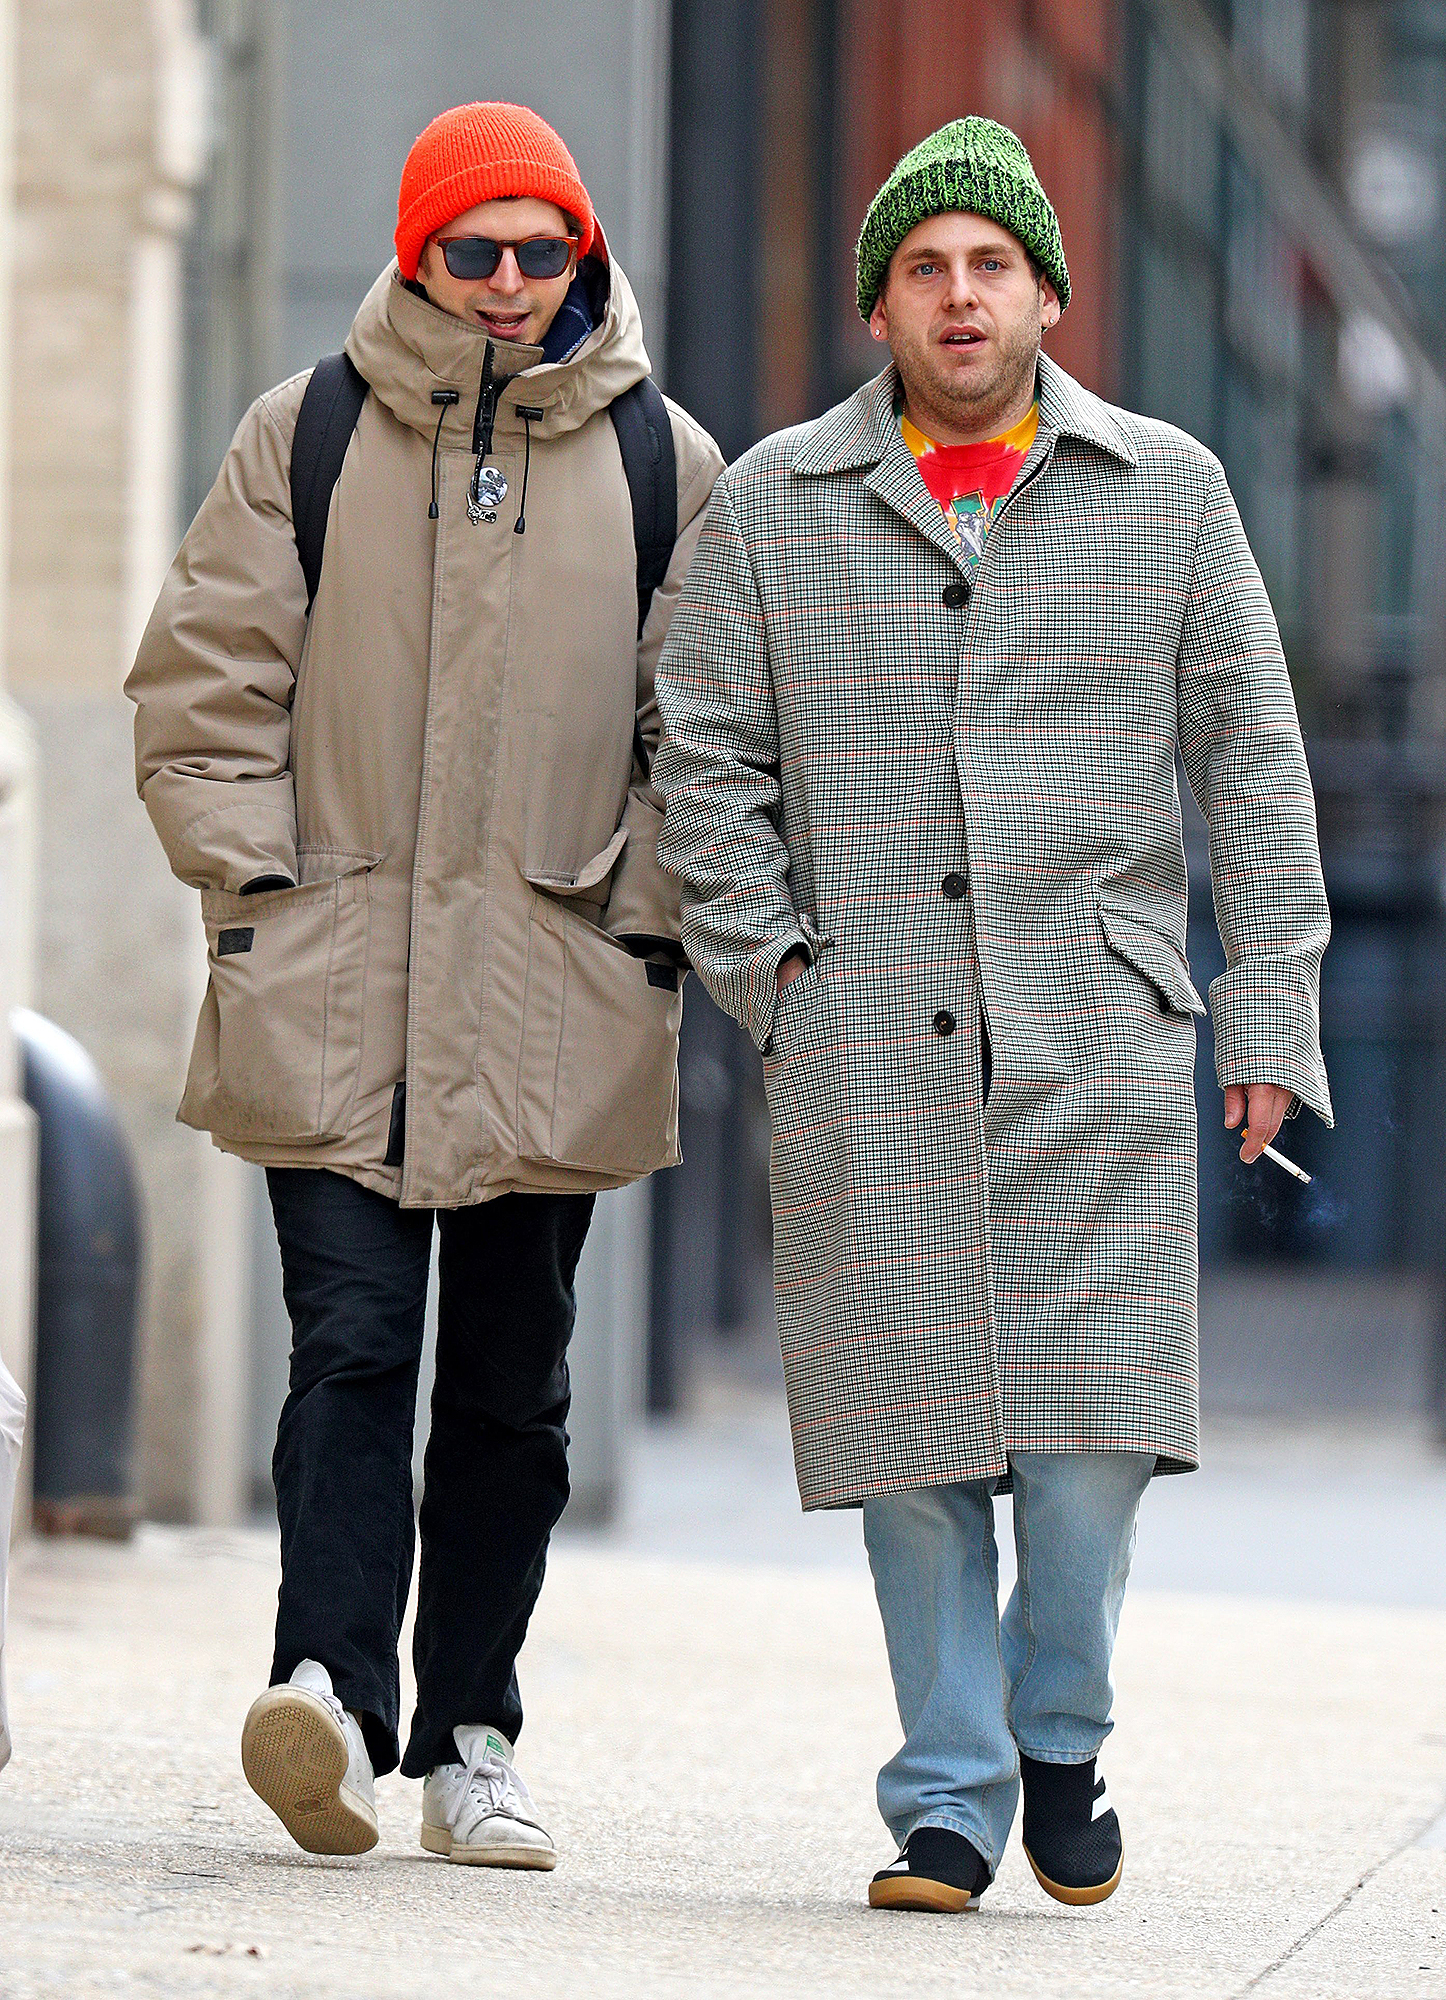 EXCLUSIVE: Jonah Hill and Michael Cera spotted hanging out together in Tribeca